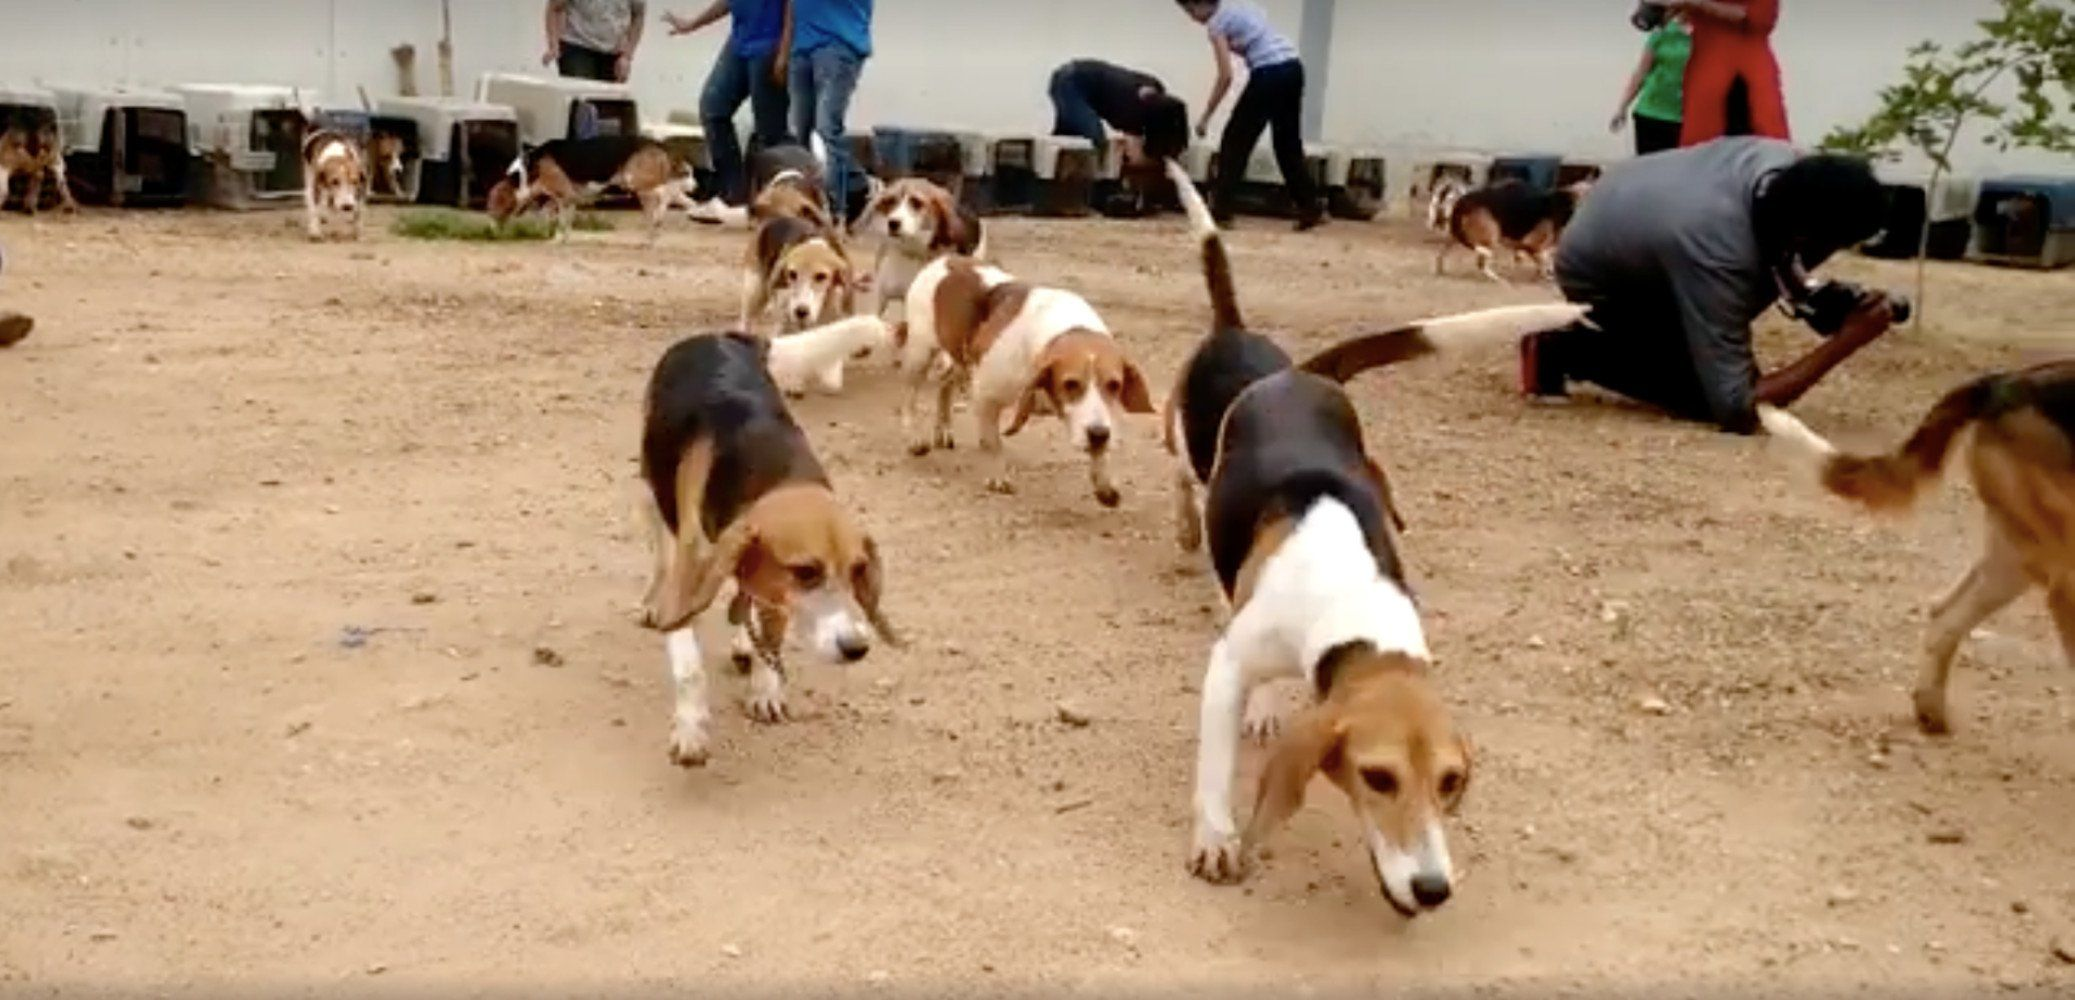 Finally Released From Laboratories 42 Beagles Step Into Freedom